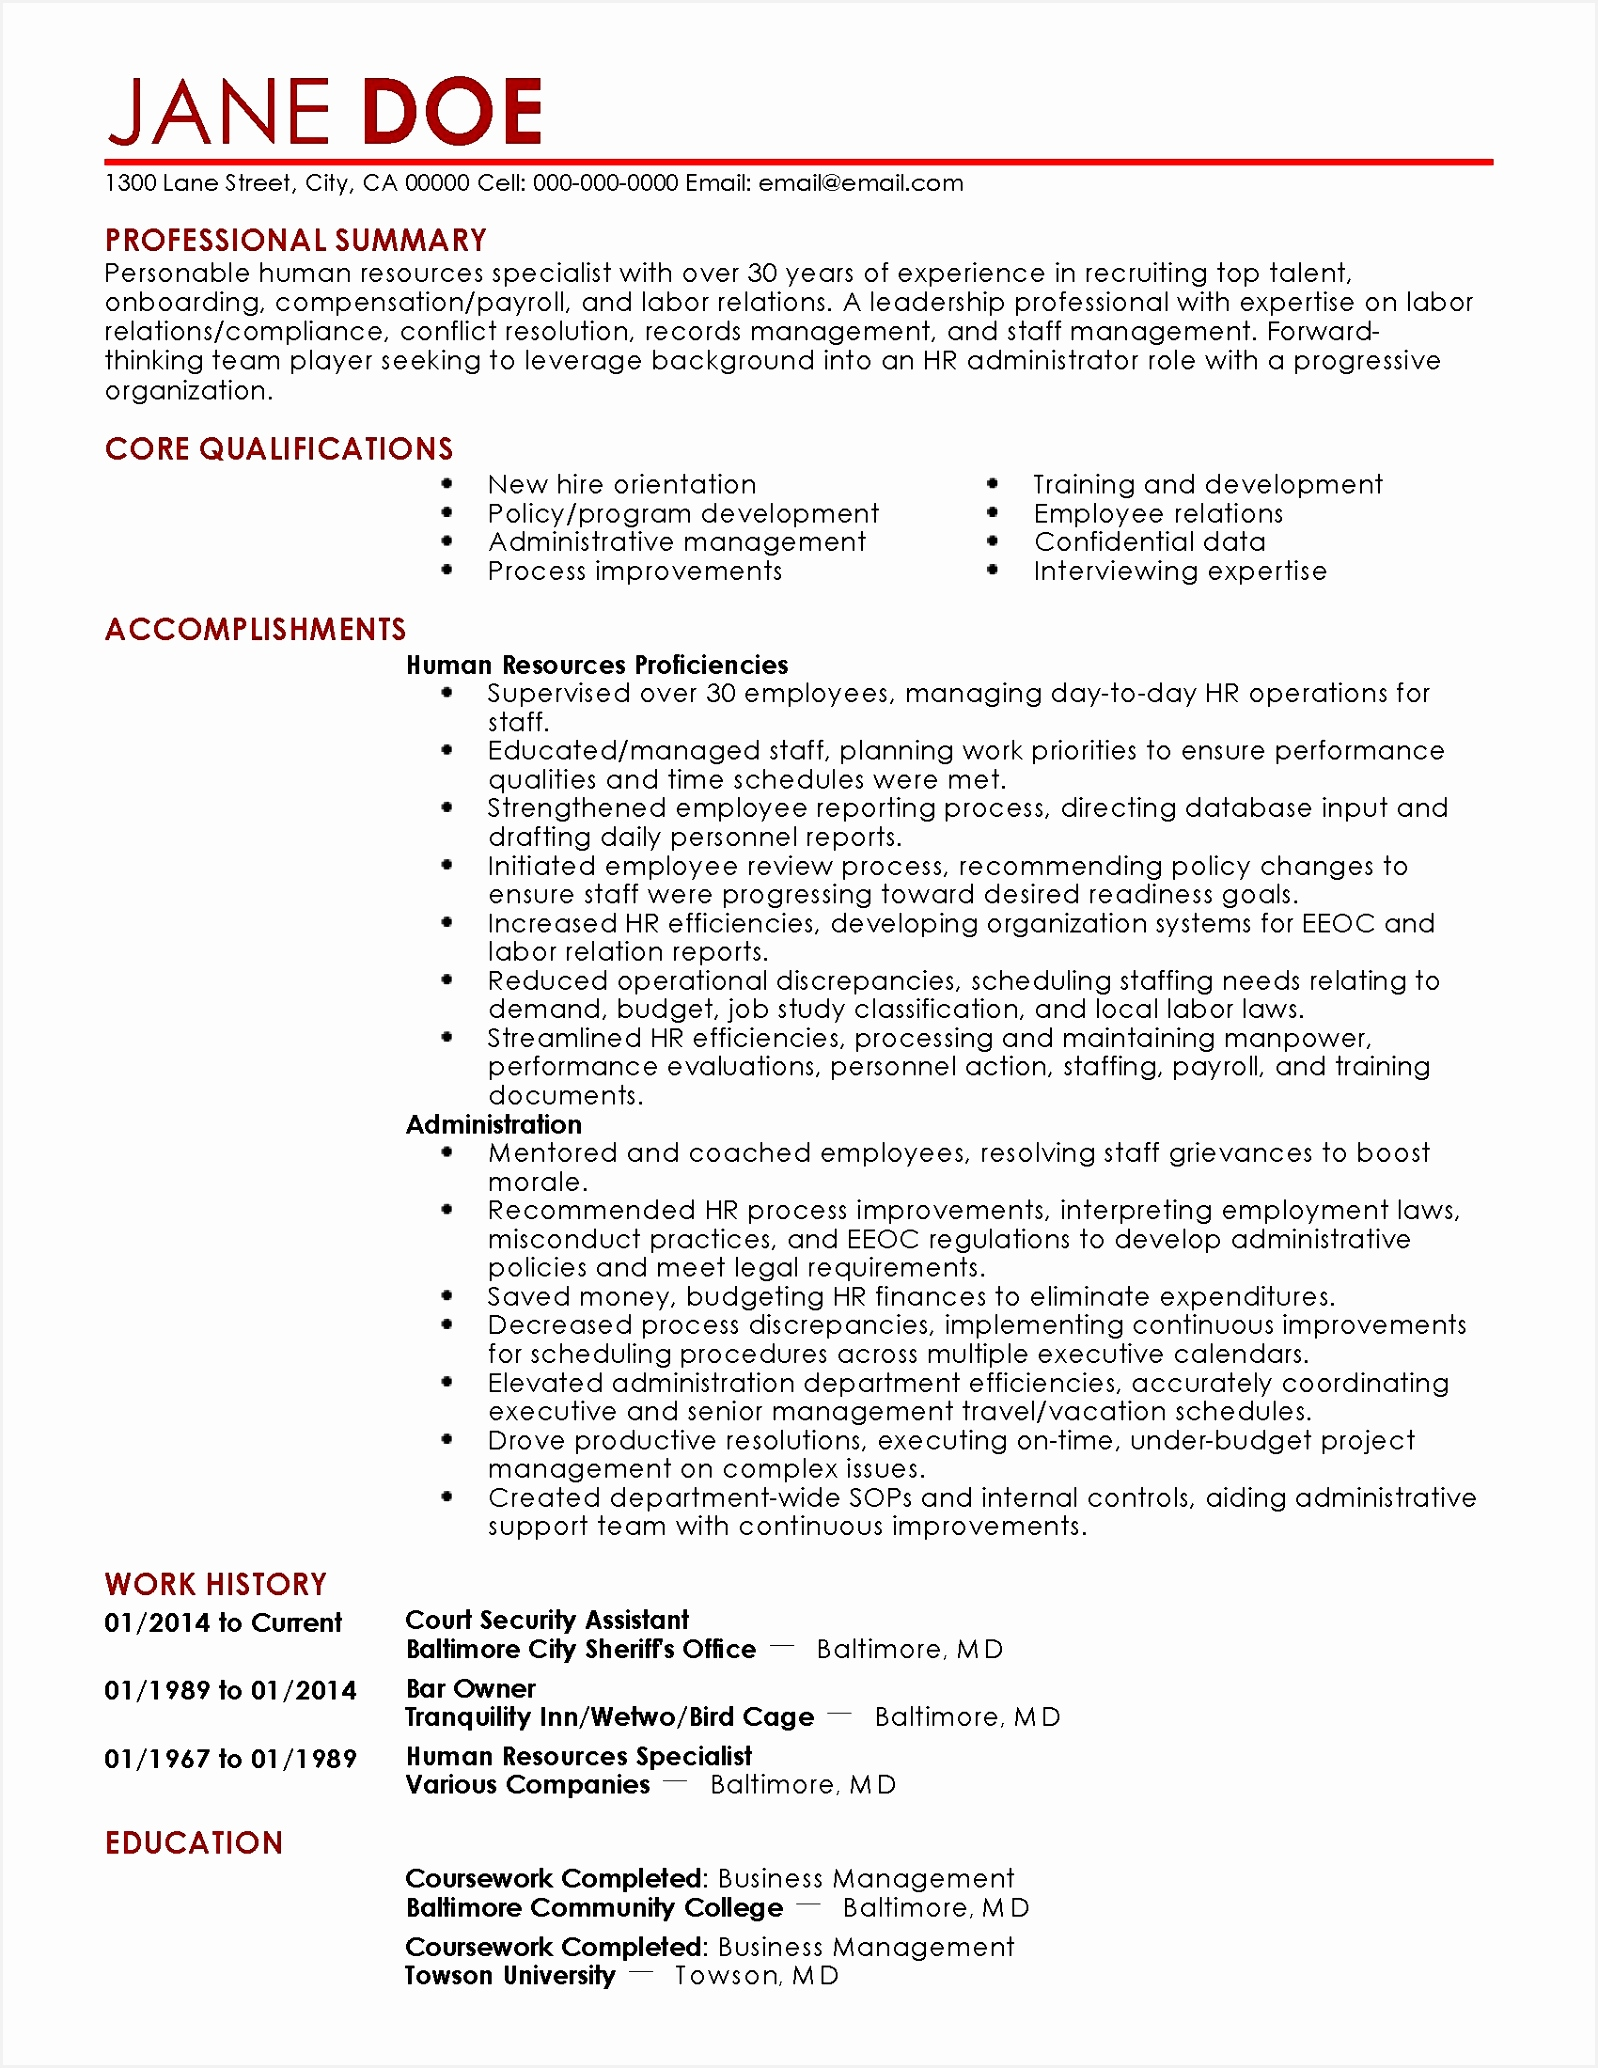 Medical assistant Resume Heqjw Awesome Medical assistant Description for Resume Valid Medical assistant Of 8 Medical assistant Resume